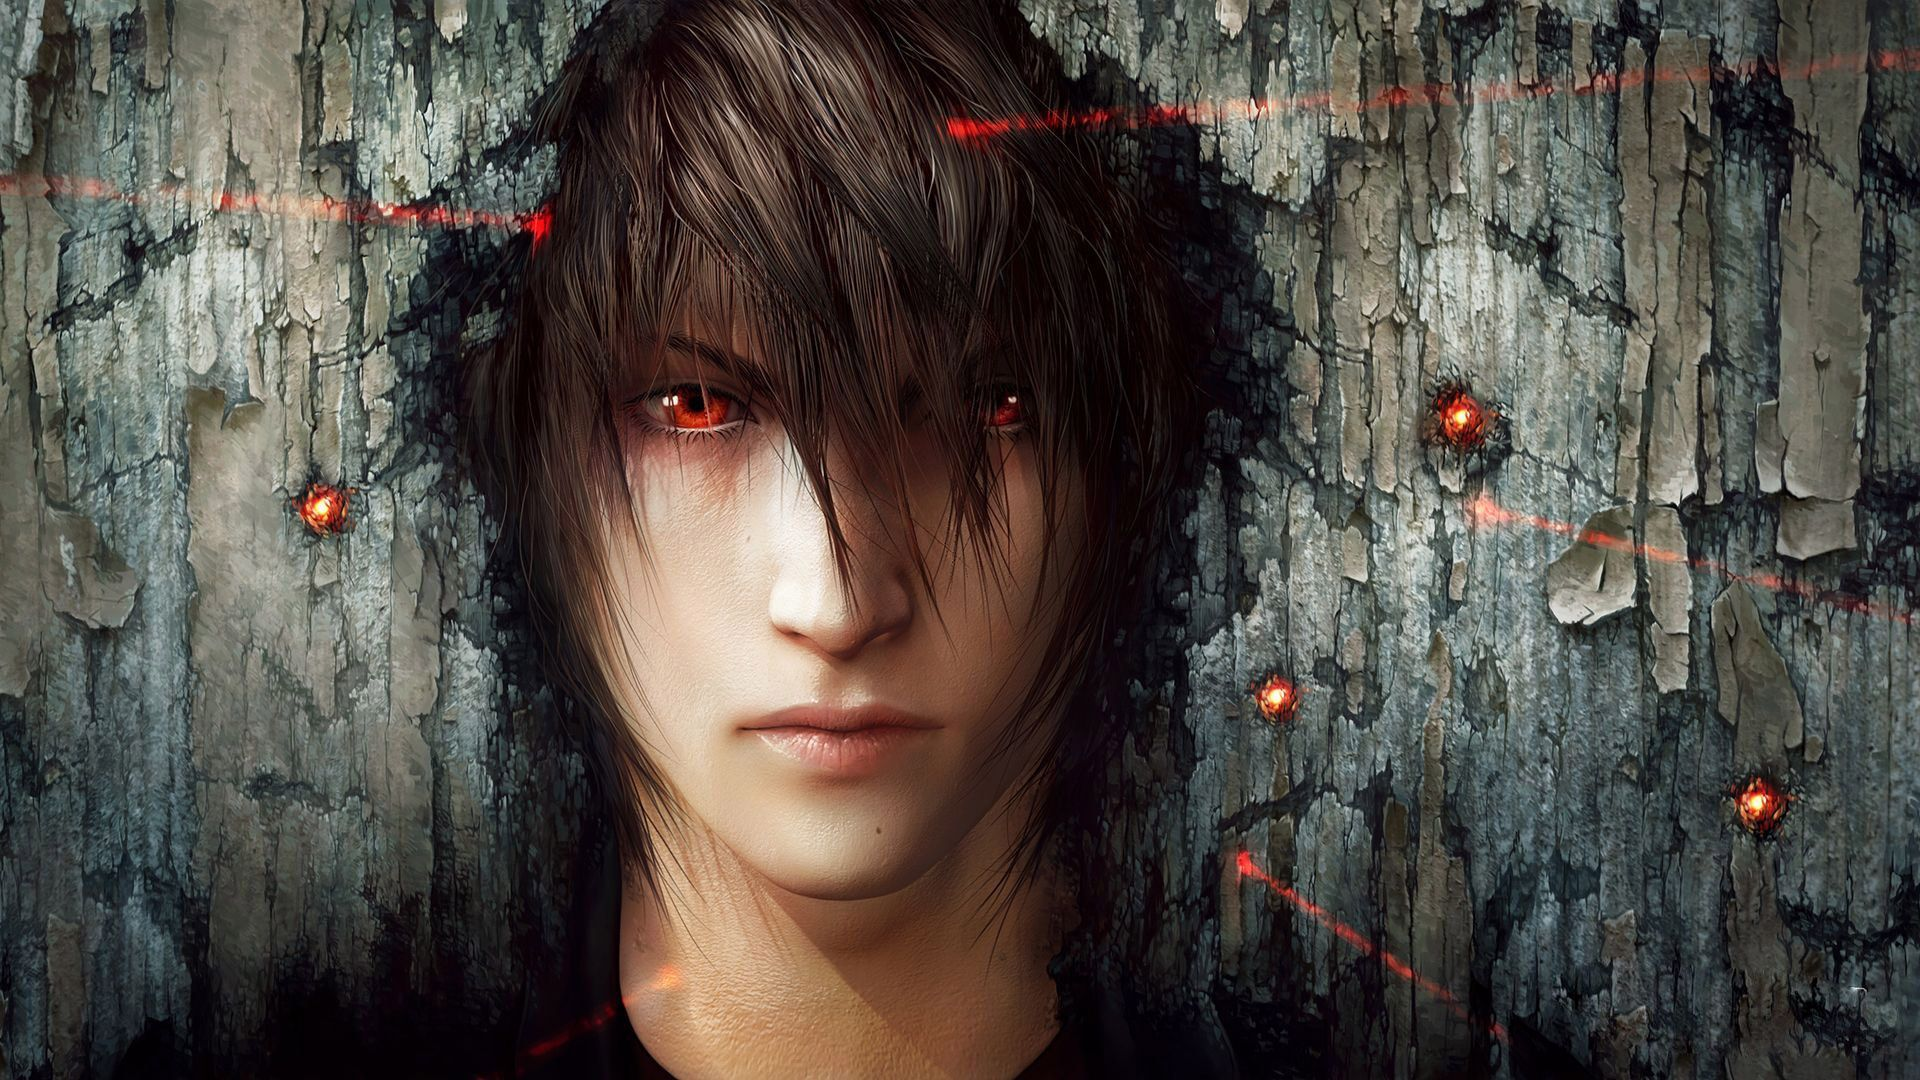 Final Fantasy Xv Wallpapers The Best 79 Images In 2018: Final Fantasy XV's Only Playable Character Is Noctis